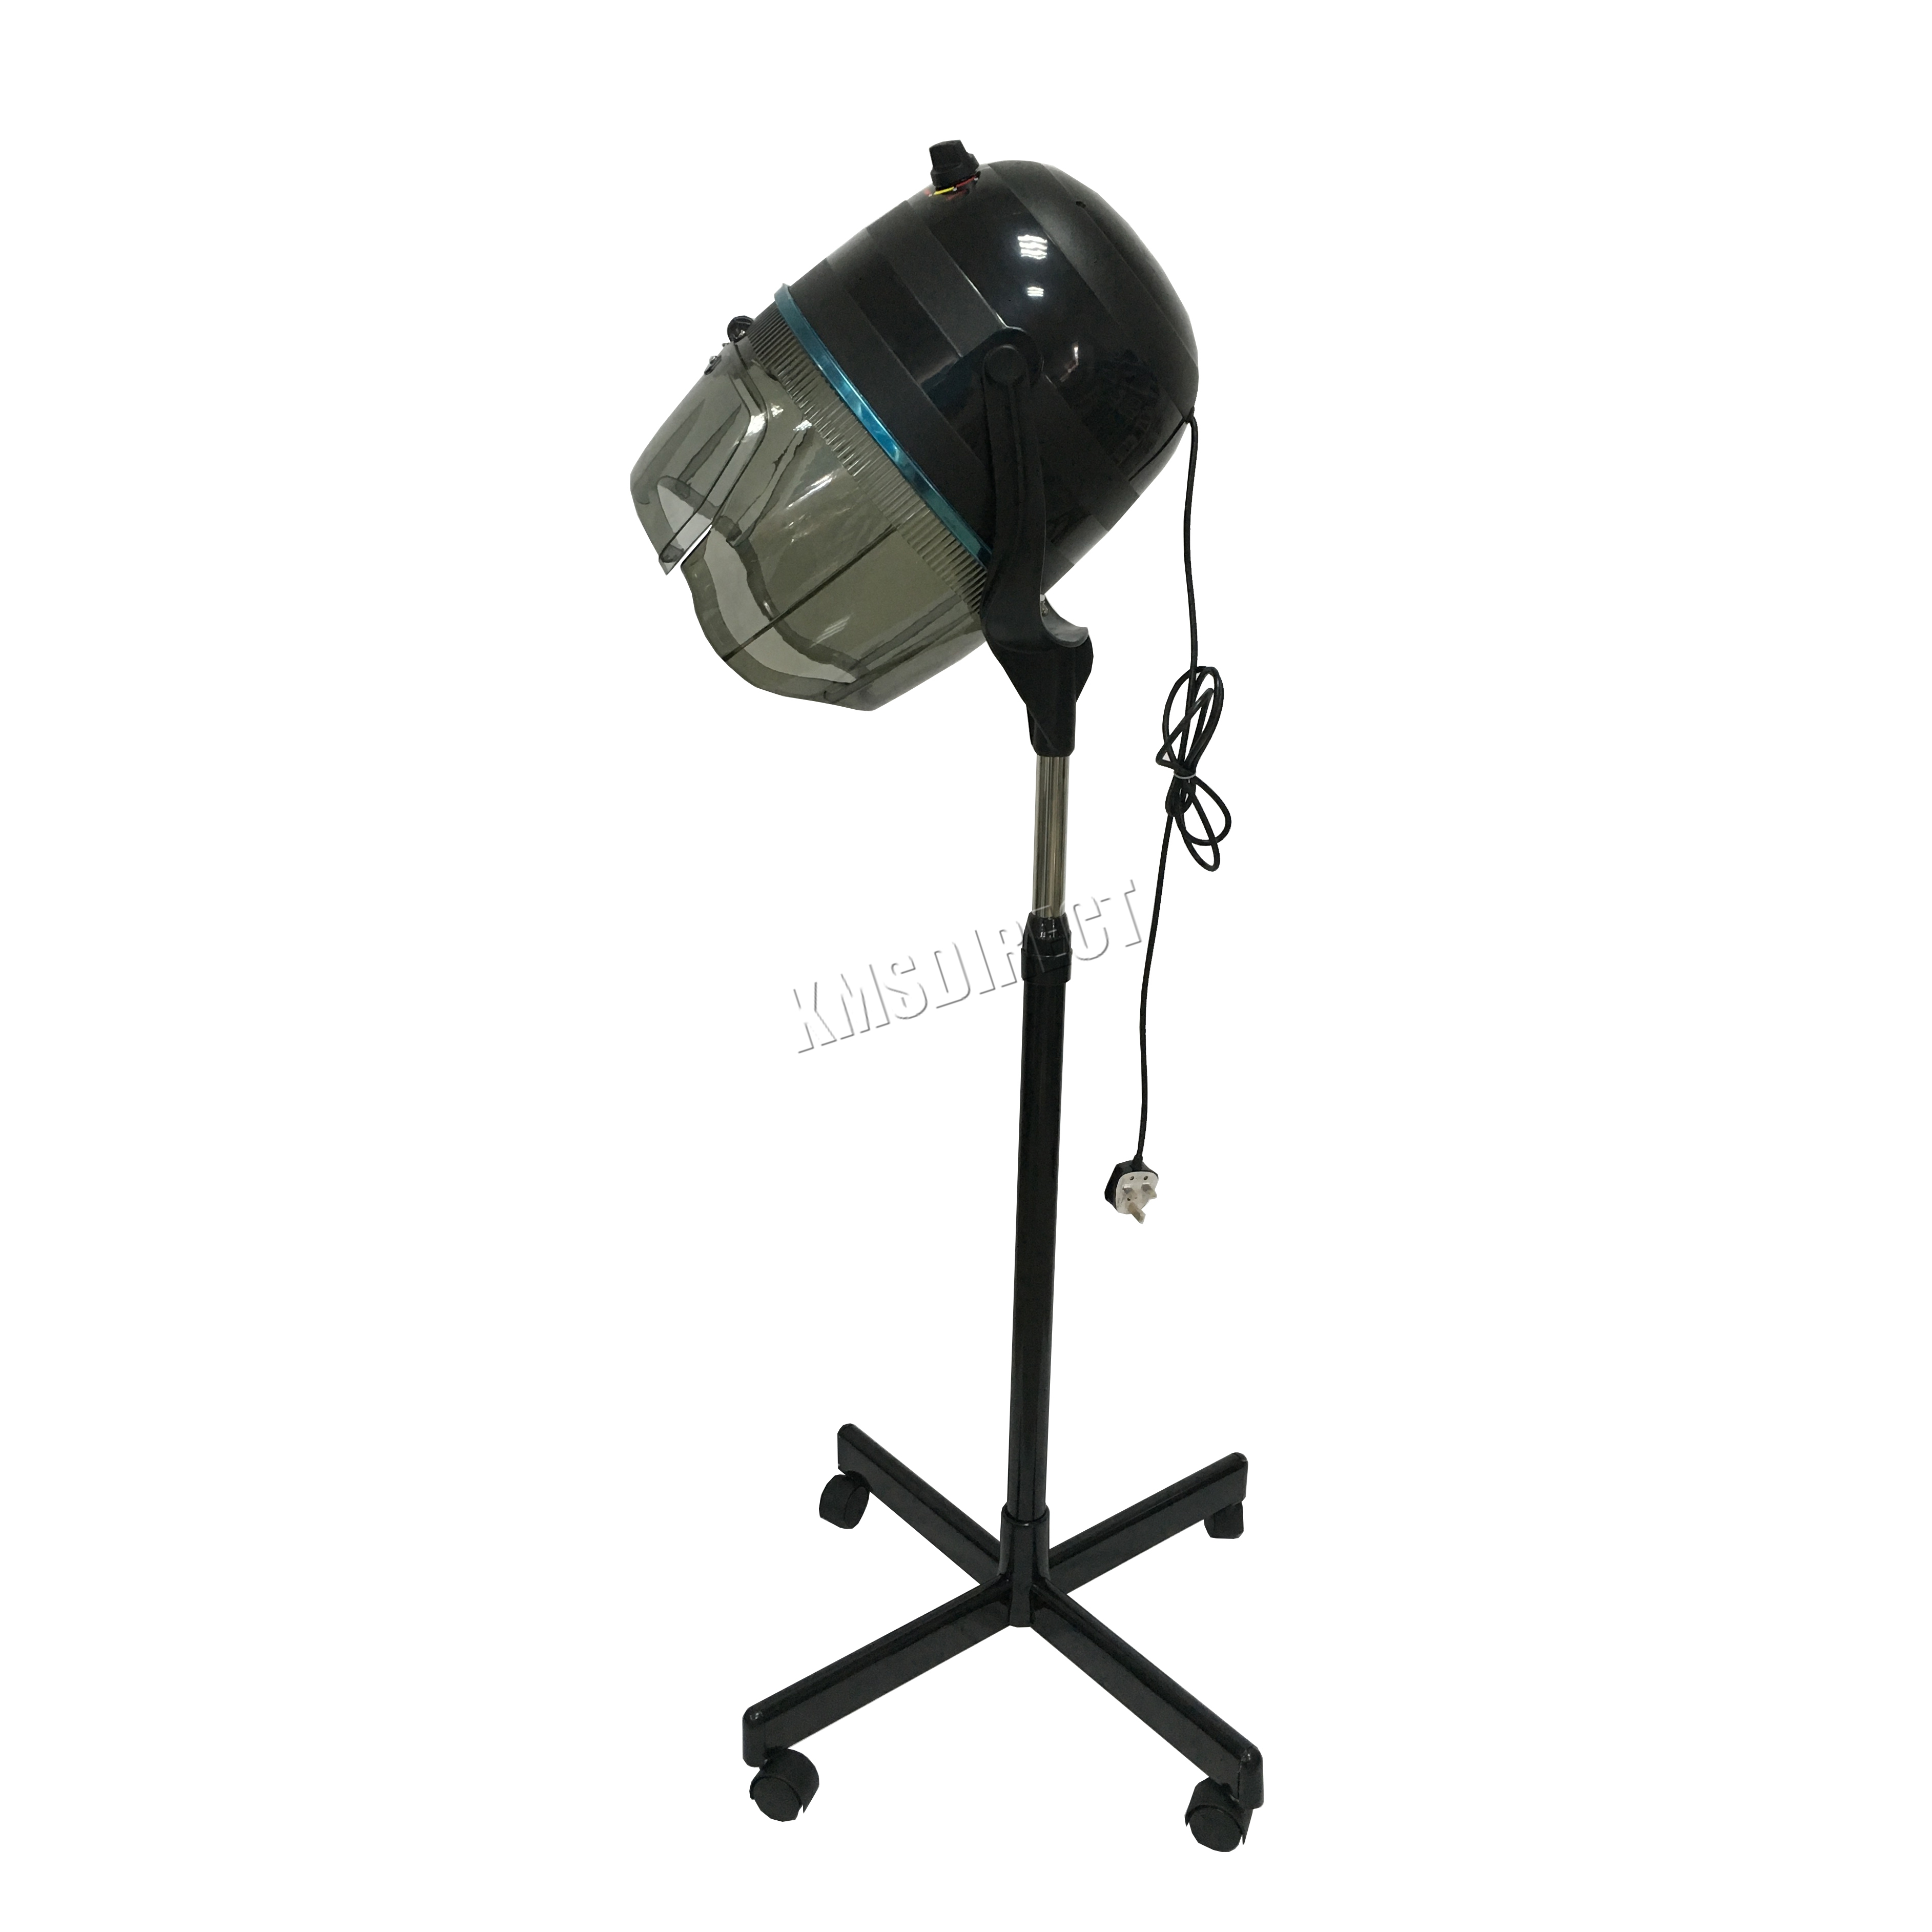 FoxHunter Portable Salon Hair Hood Dryer Stand Up